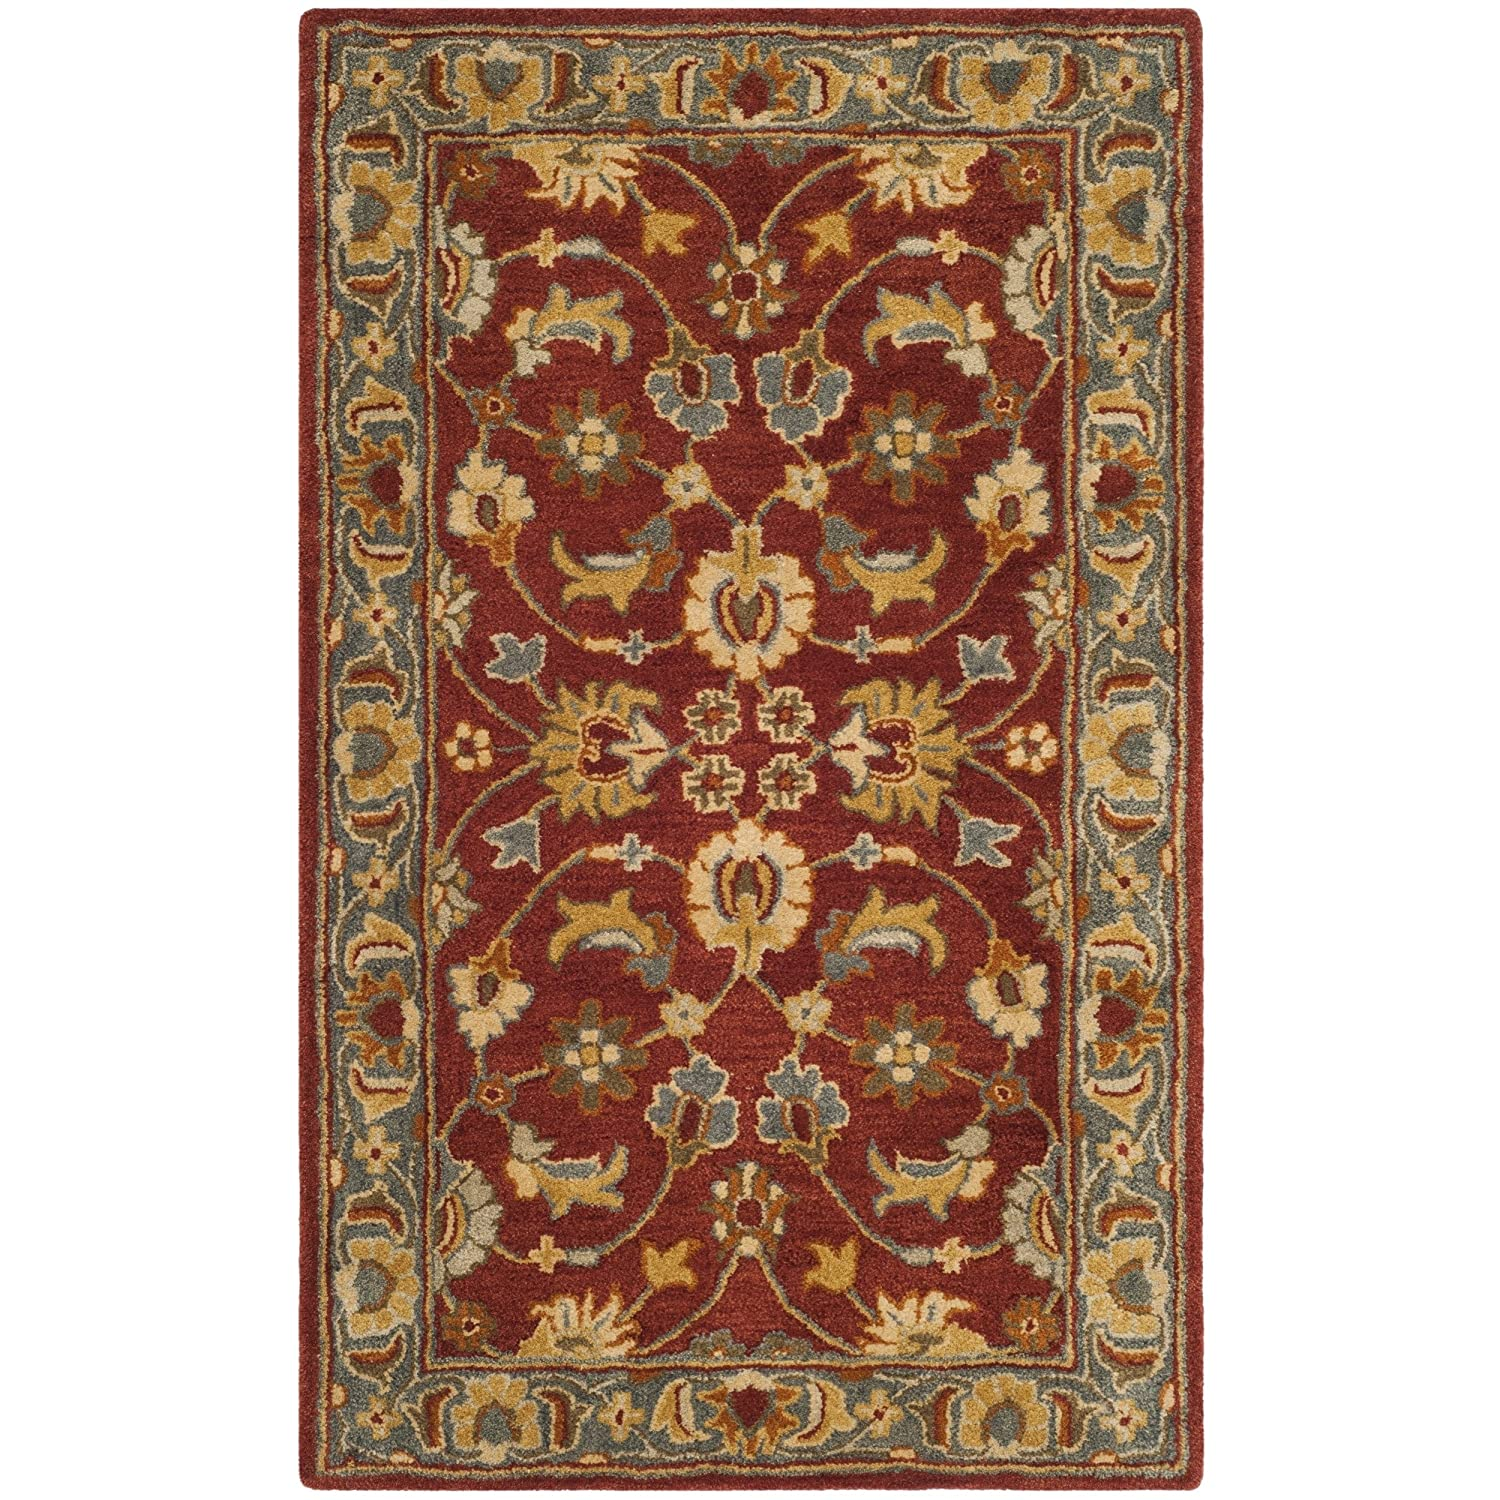 Safavieh Heritage Collection HG403A Traditional Red and Blue Runner 23 x 12